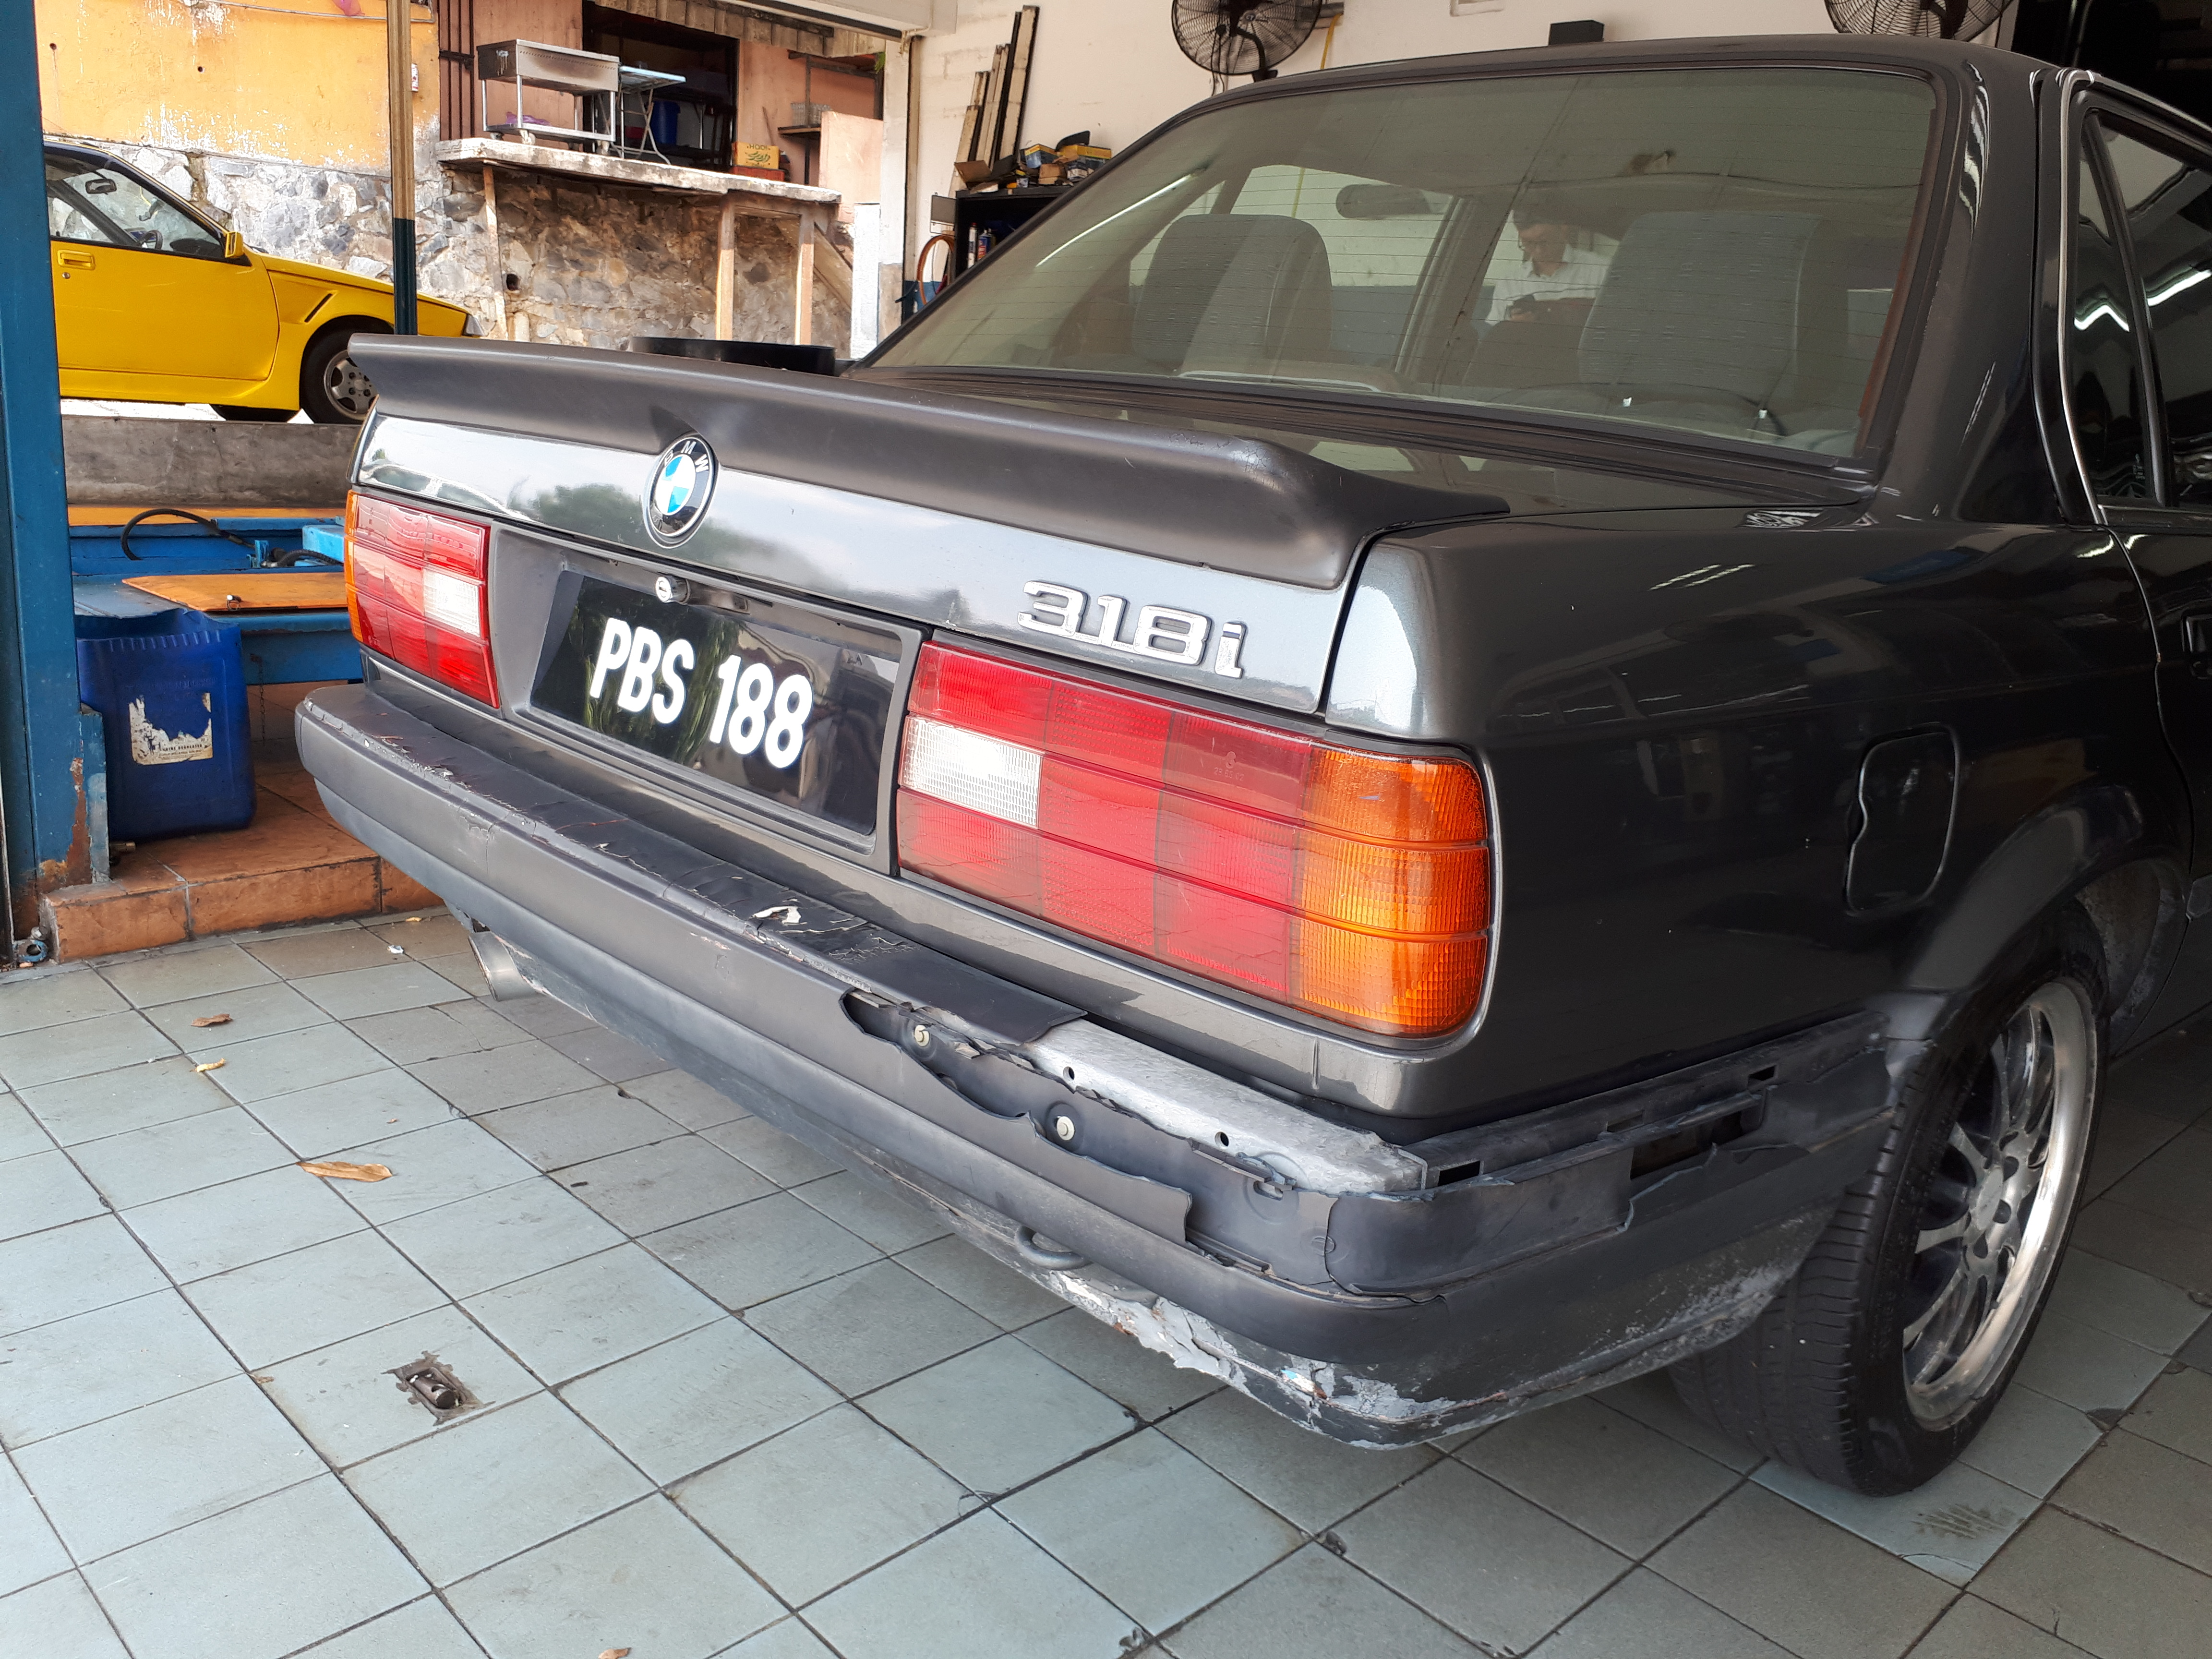 Feature Why I Bought A 28 Year Old Bmw E30 And Broke Every Rule In My To Do Book Videos News And Reviews On Malaysian Cars Motorcycles And Automotive Lifestyle